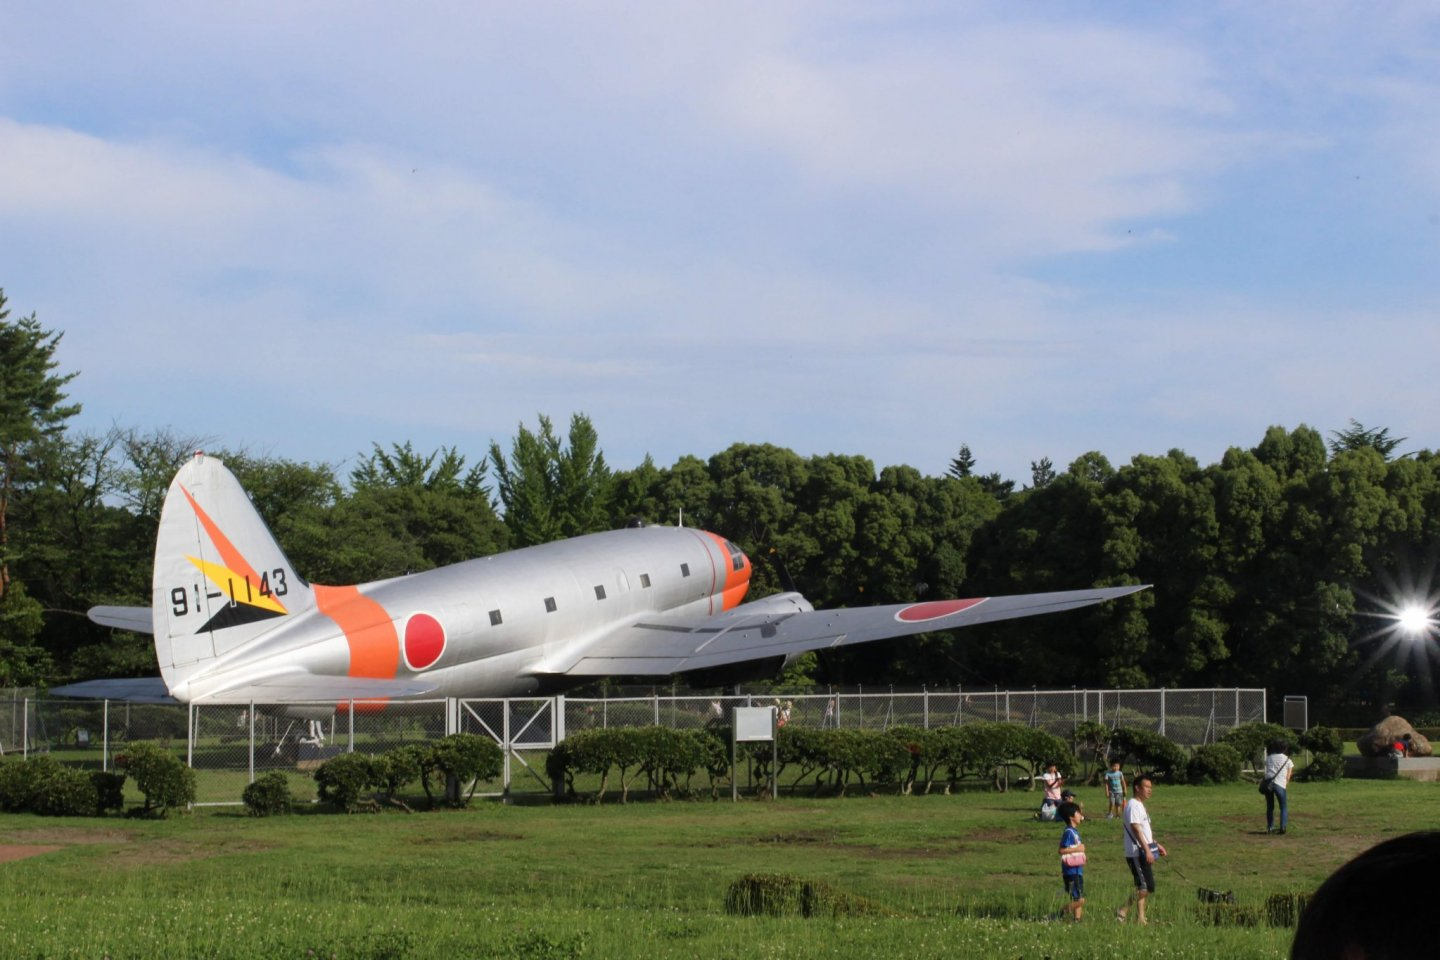 Airplane in the park